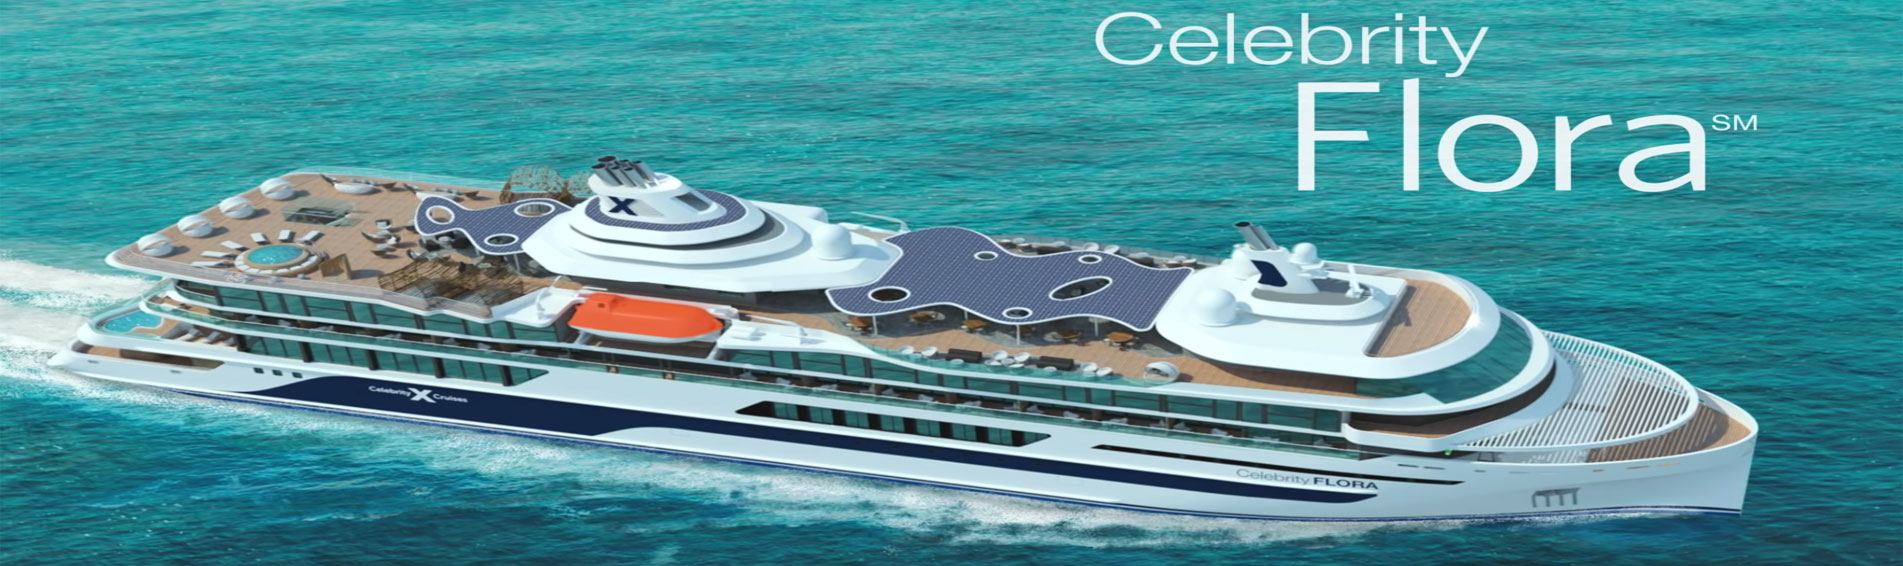 CELEBRITY FLORA concept drawing aerial view